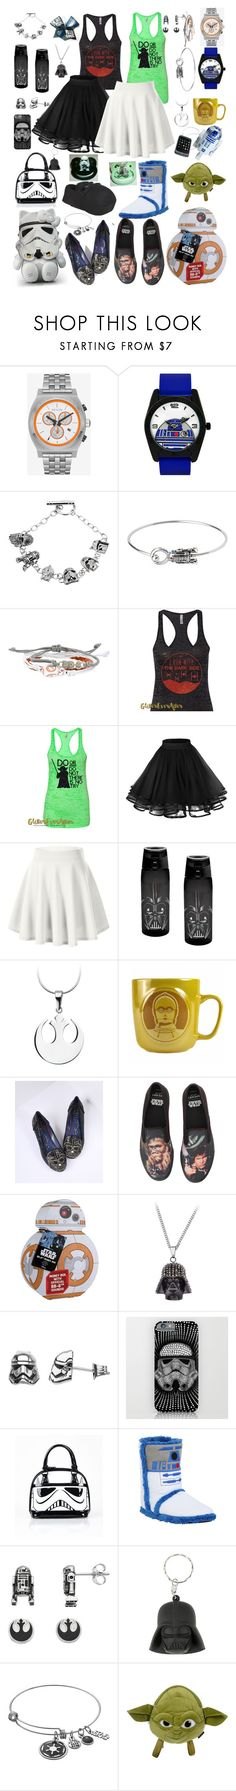 """The Dark Side has Cookies!!!"" by linnybfox ❤ liked on Polyvore featuring Hello Kitty, R2, Disney, cutekawaii, Zak! Designs, Irregular Choice, Sperry, Loungefly and Hot Topic"